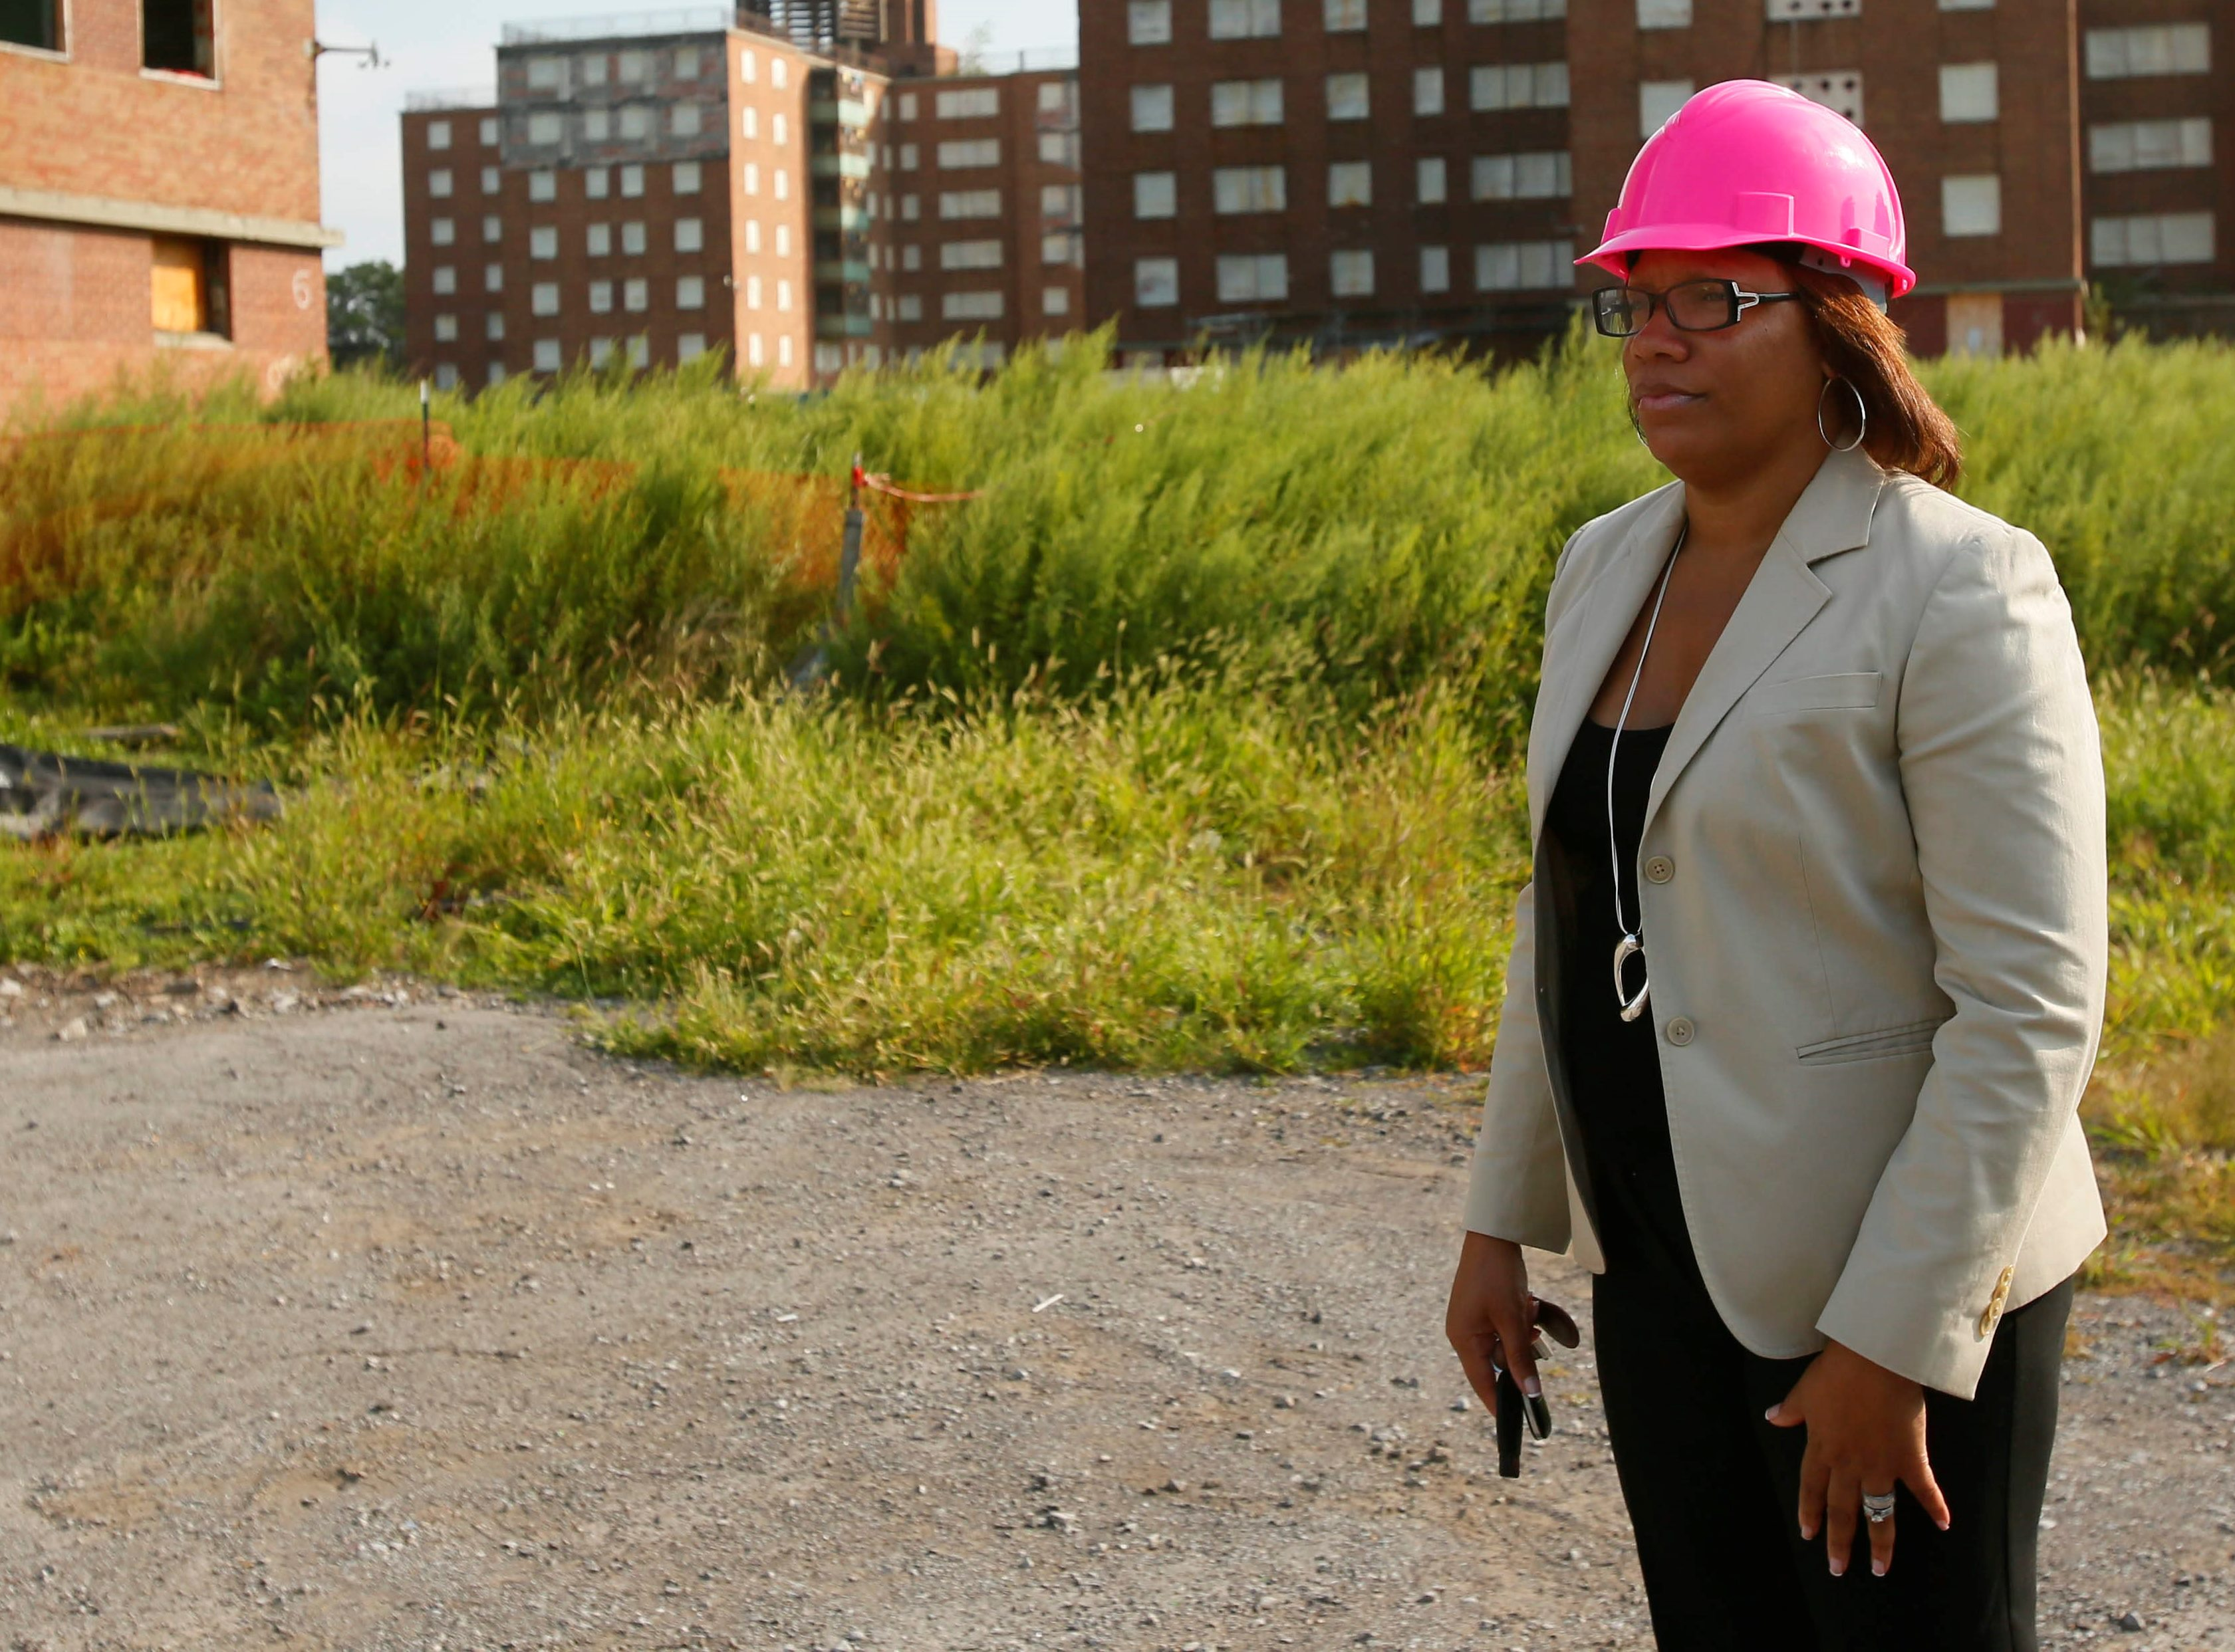 Dawn Sanders-Garrett made 34 trips costing about $27,000 from 2013 to 2016. (Buffalo News file photo)